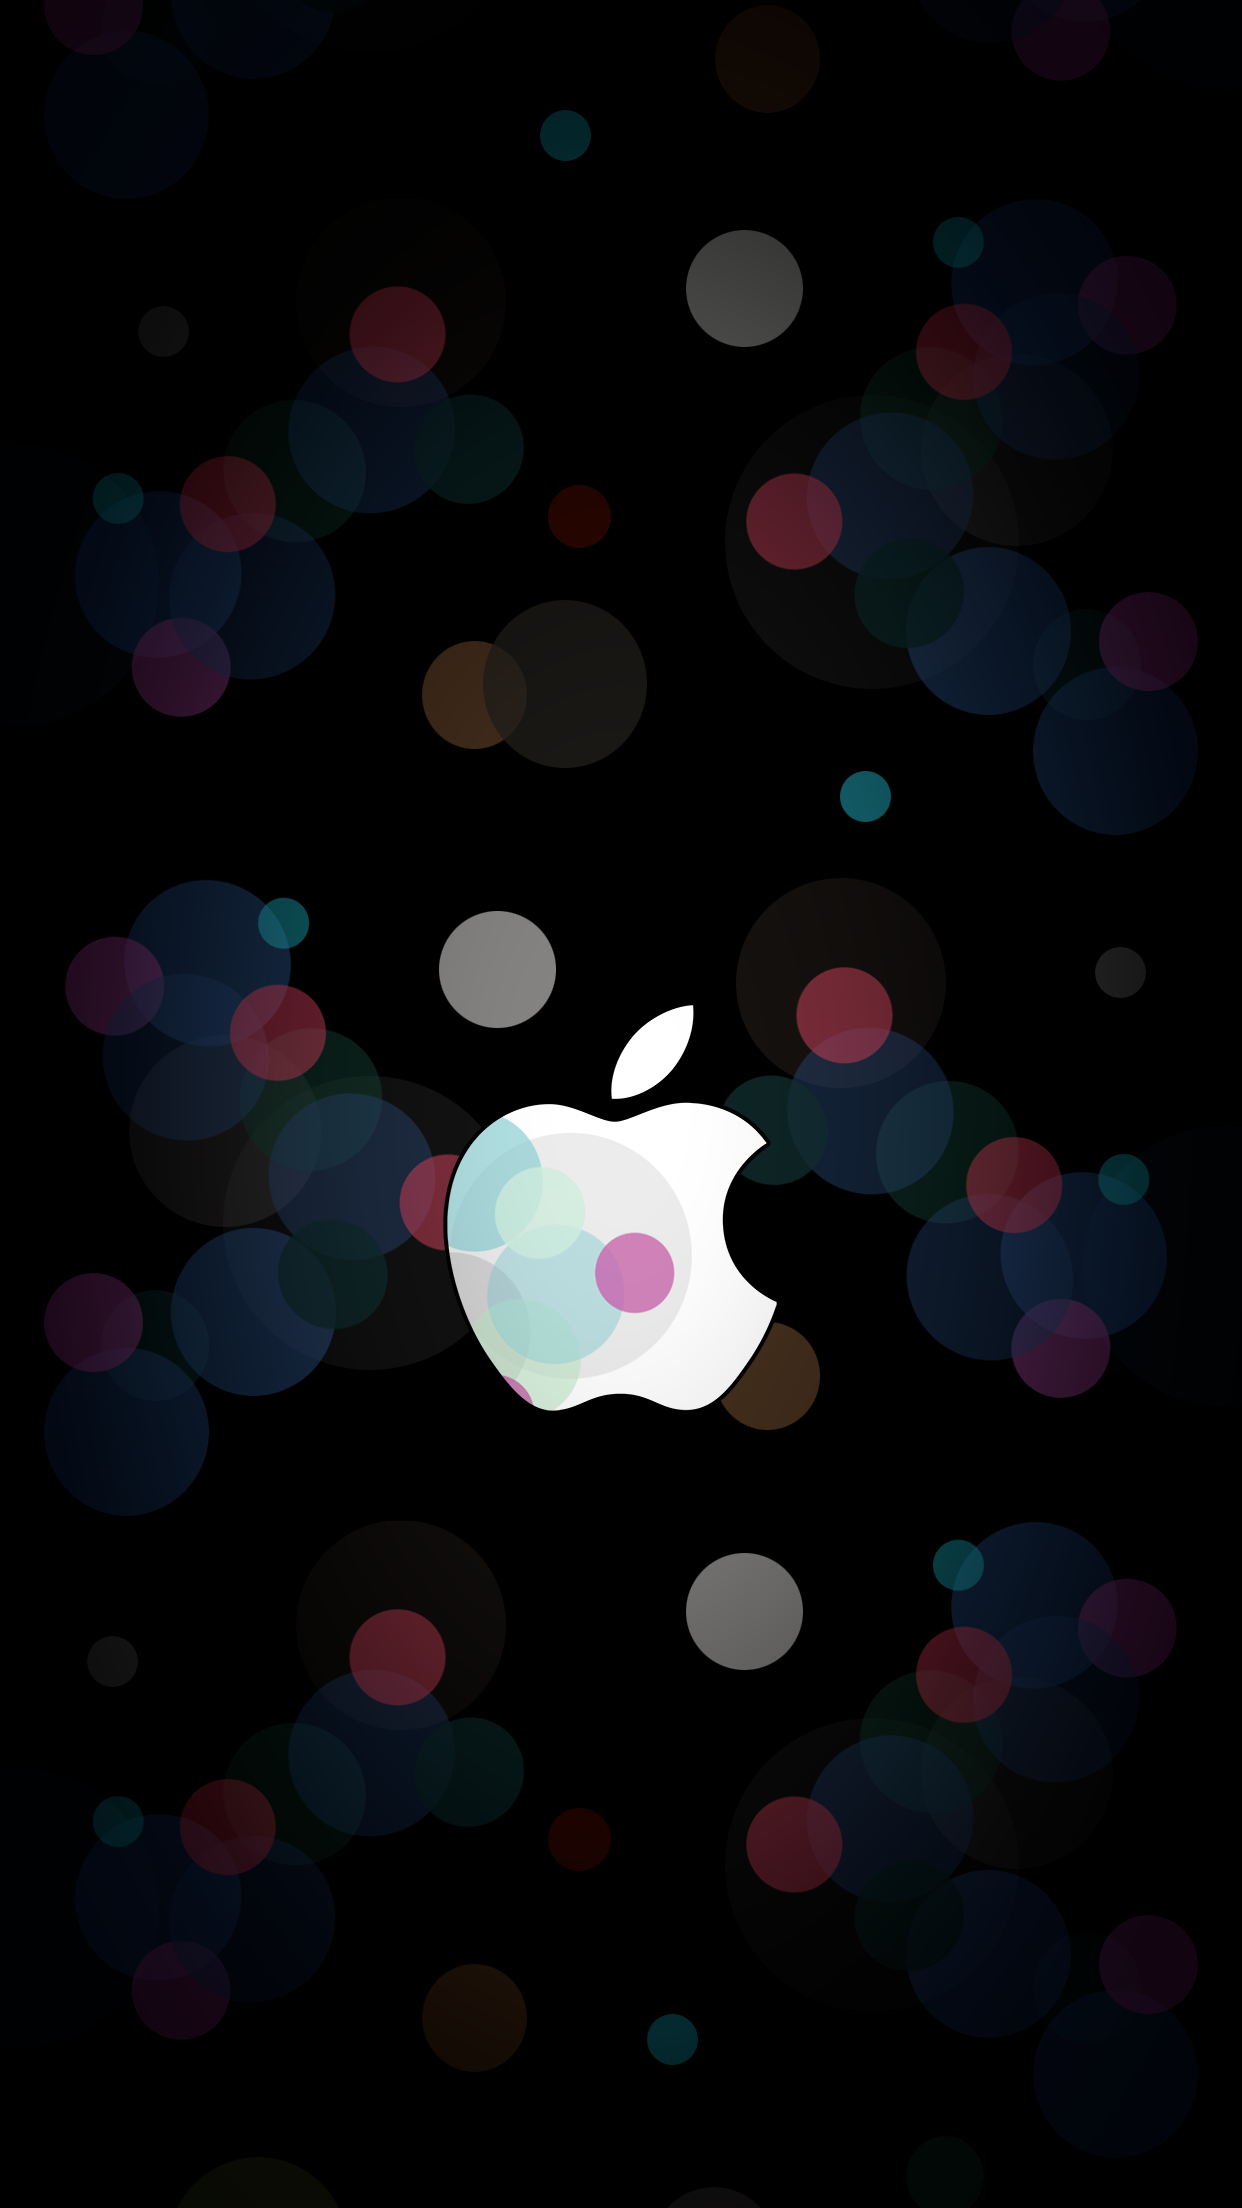 Apple September 7 event wallpaper ar7 inspired logo